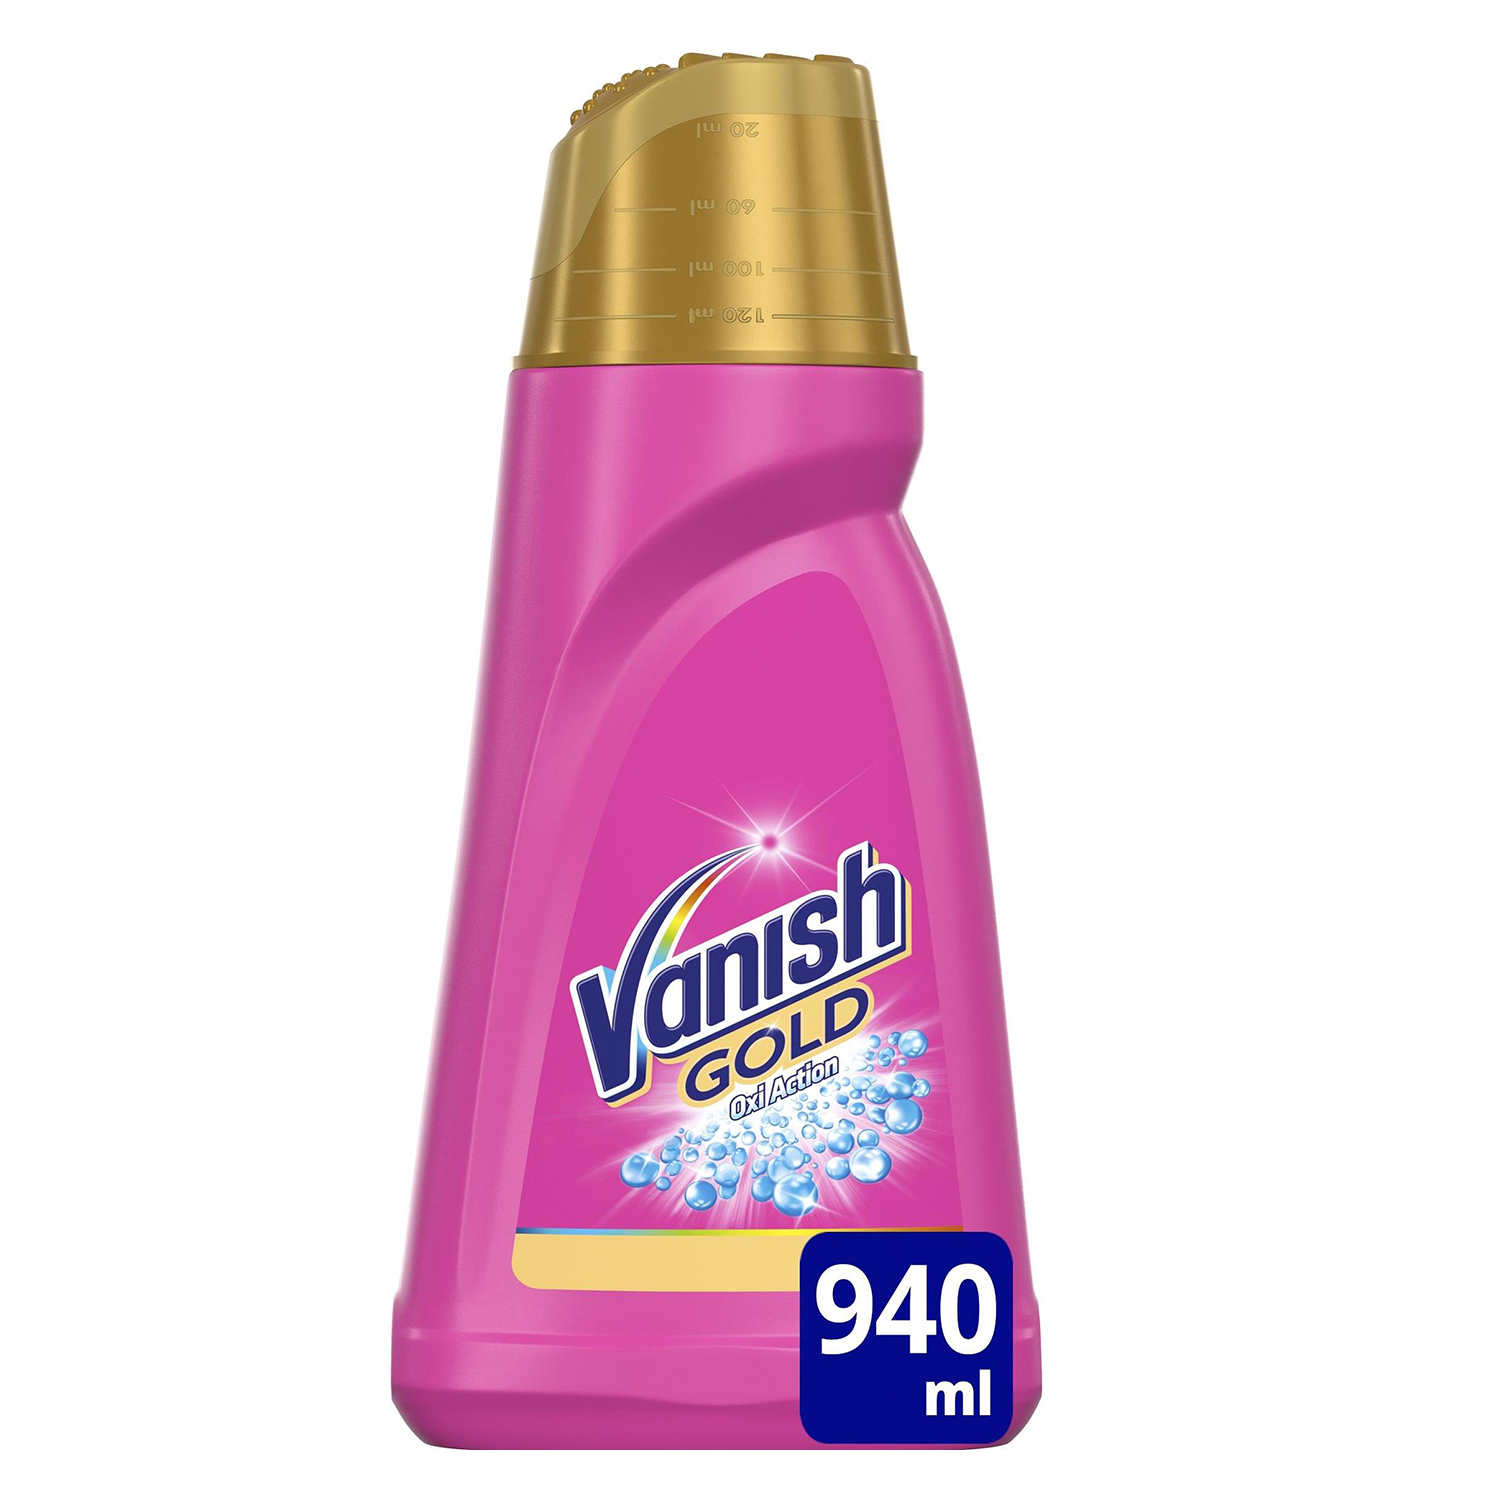 Quitamanchas en gel Gold Vanish OxiAction 940 ml.